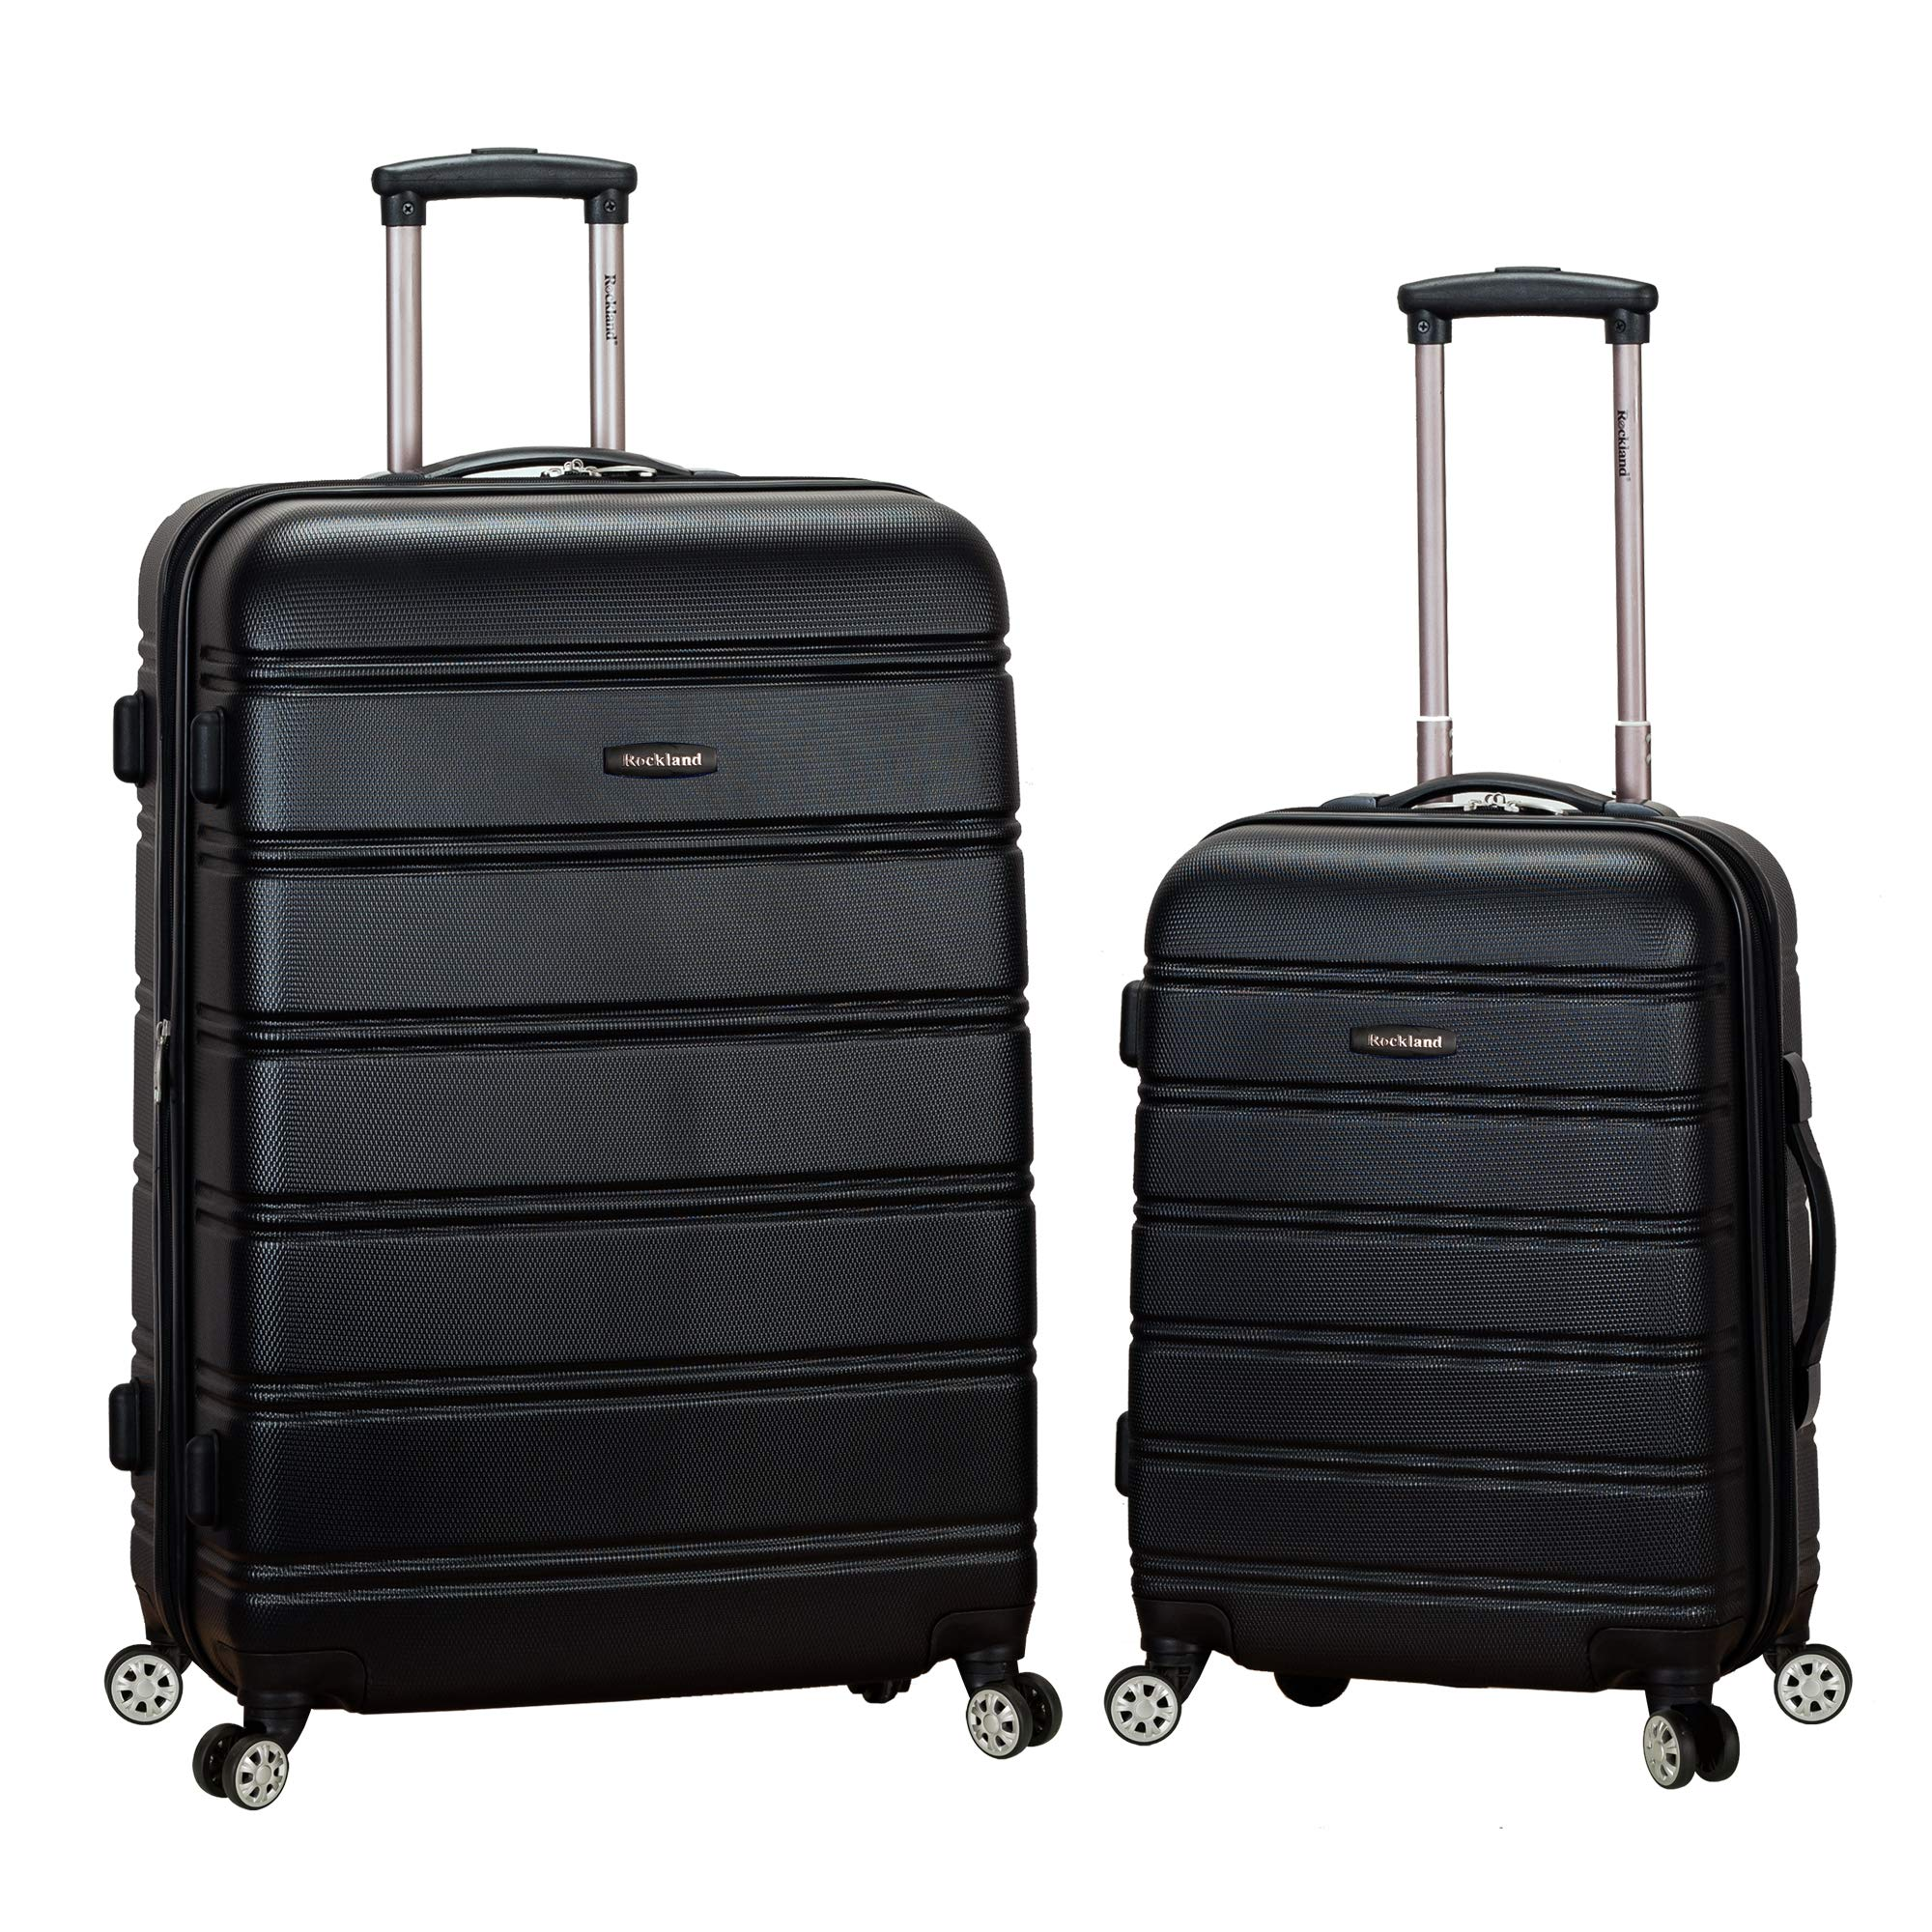 Rockland Luggage 20 Inch and 28 Inch 2 Piece Expandable Spinner Set, Black, One Size by Rockland